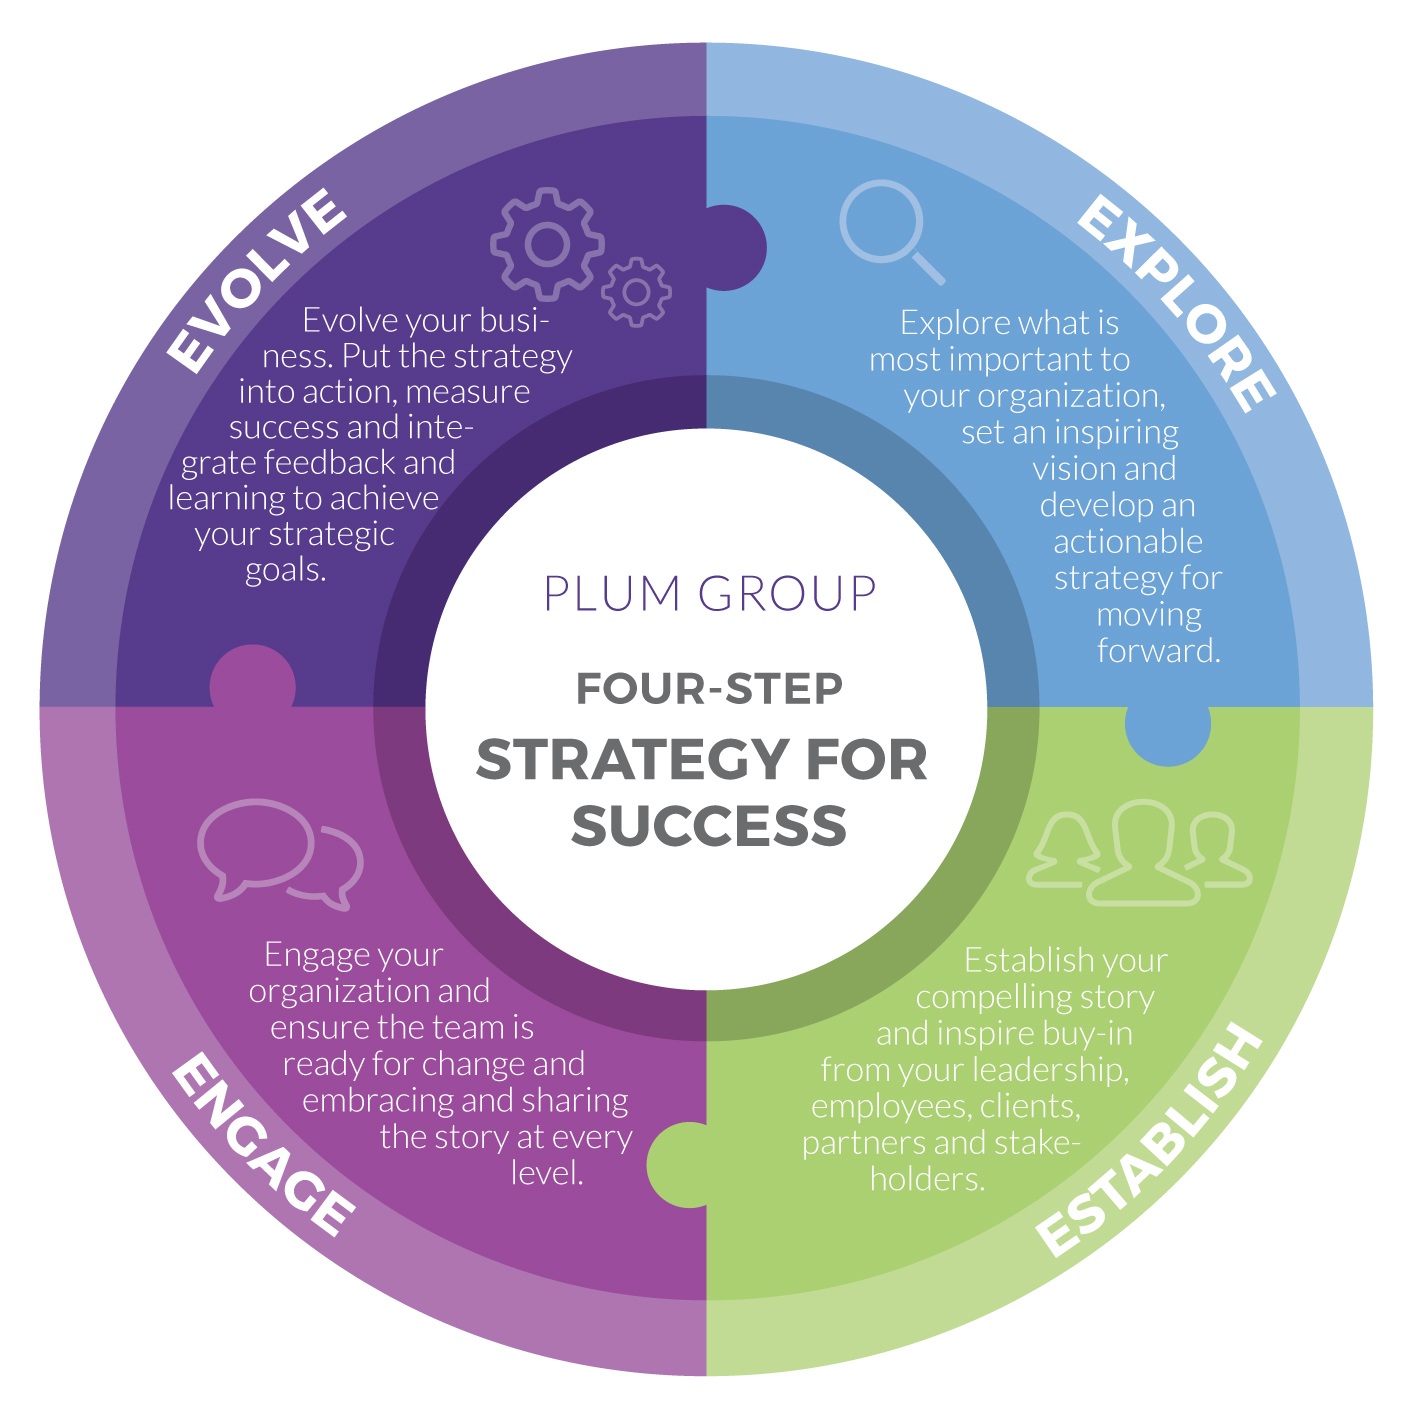 Our work is based on a four-step strategy for success. We collaborate with clients on all four phases, or offer entry points anywhere along the continuum, based on your needs.